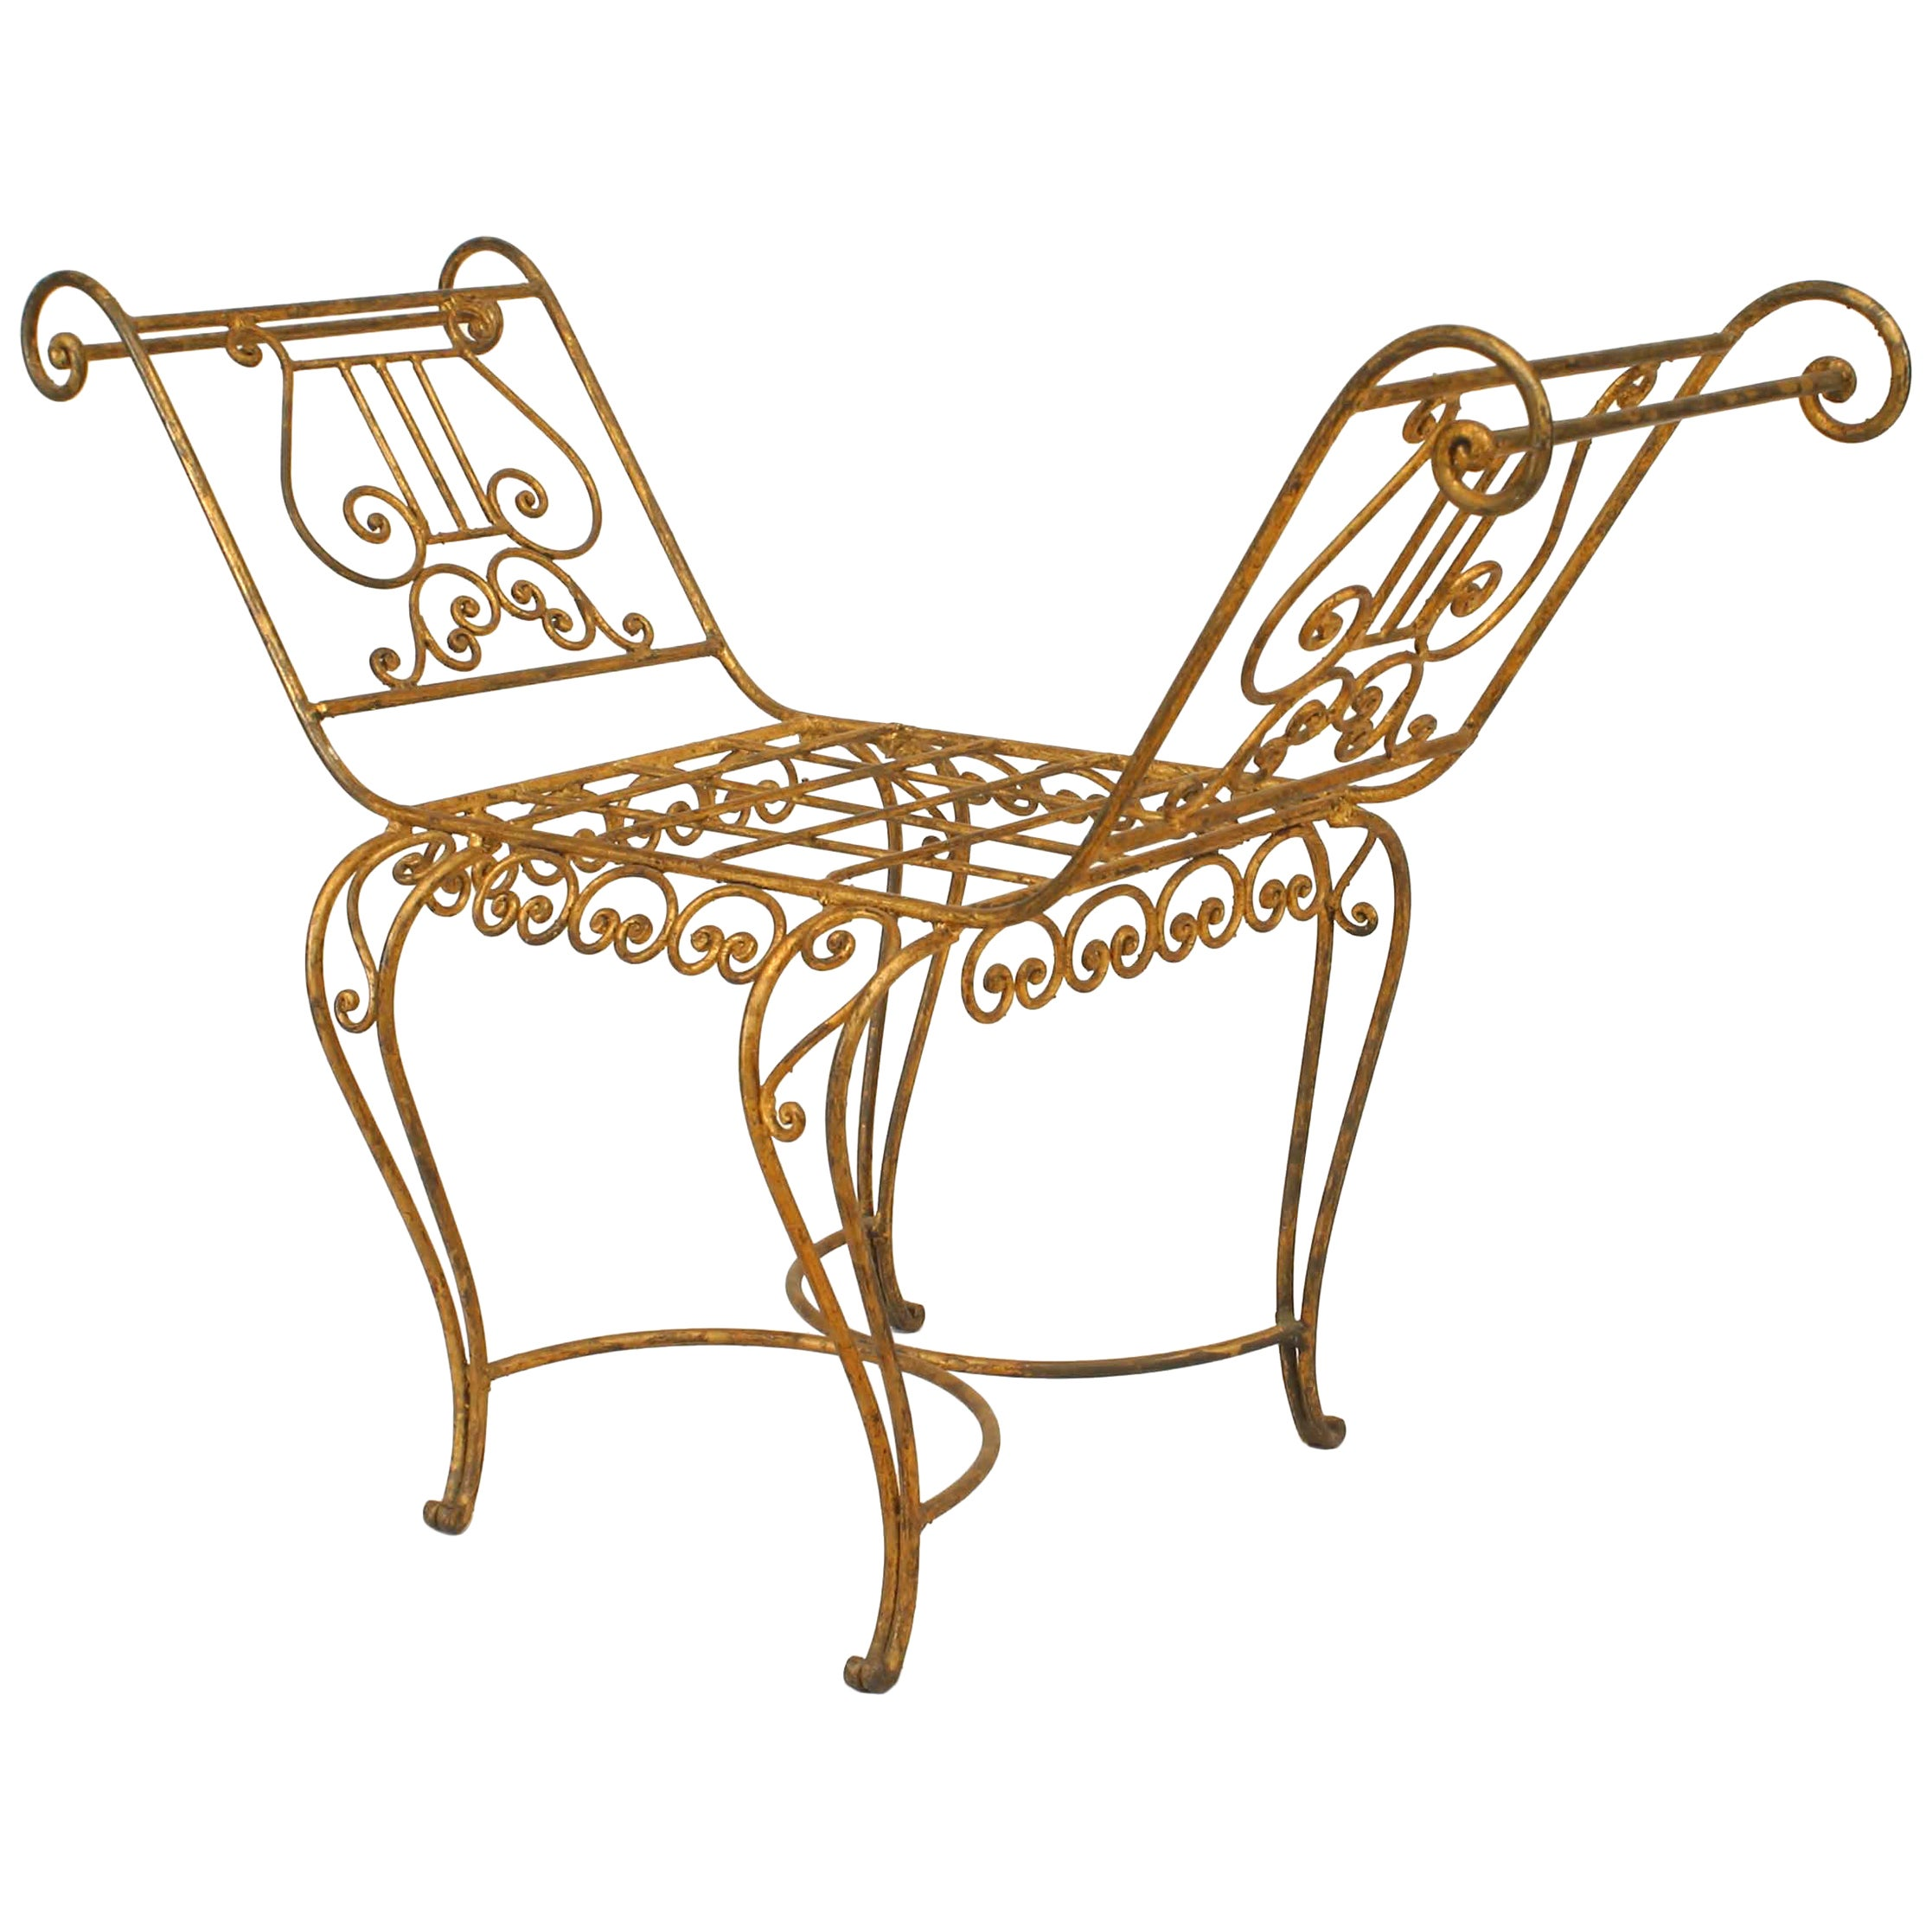 French Art Moderne '1940s' Gilt Wrought Iron Window Bench